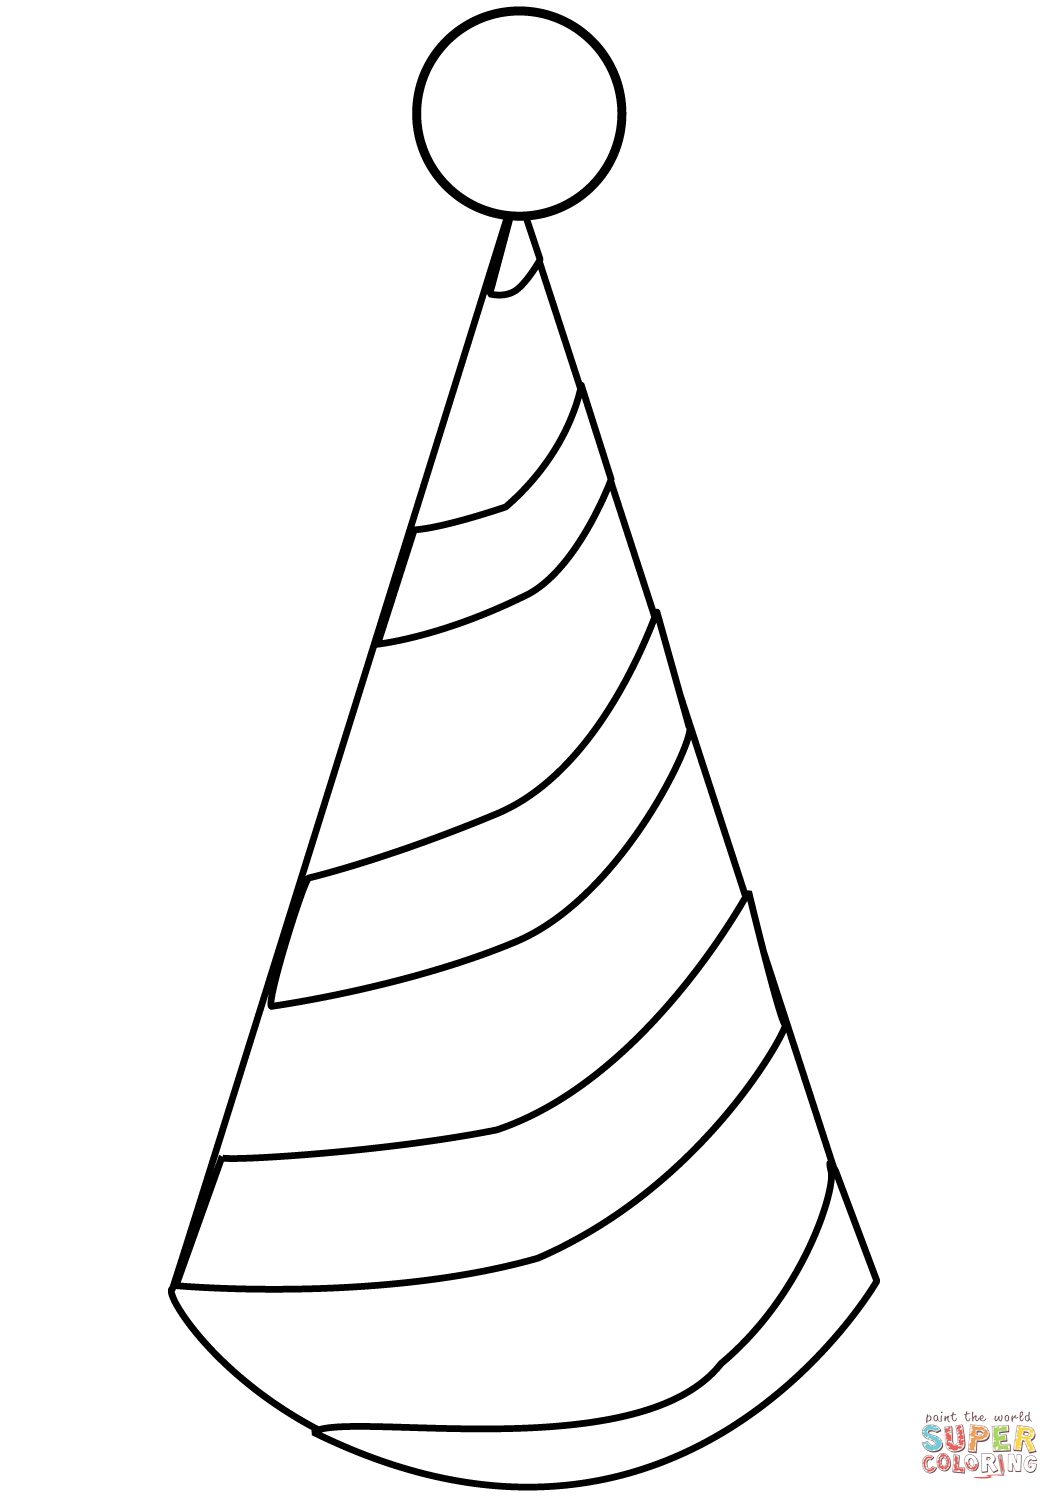 Party Hat Coloring Page | Free Printable Coloring Pages - Free Printable Birthday Party Hats